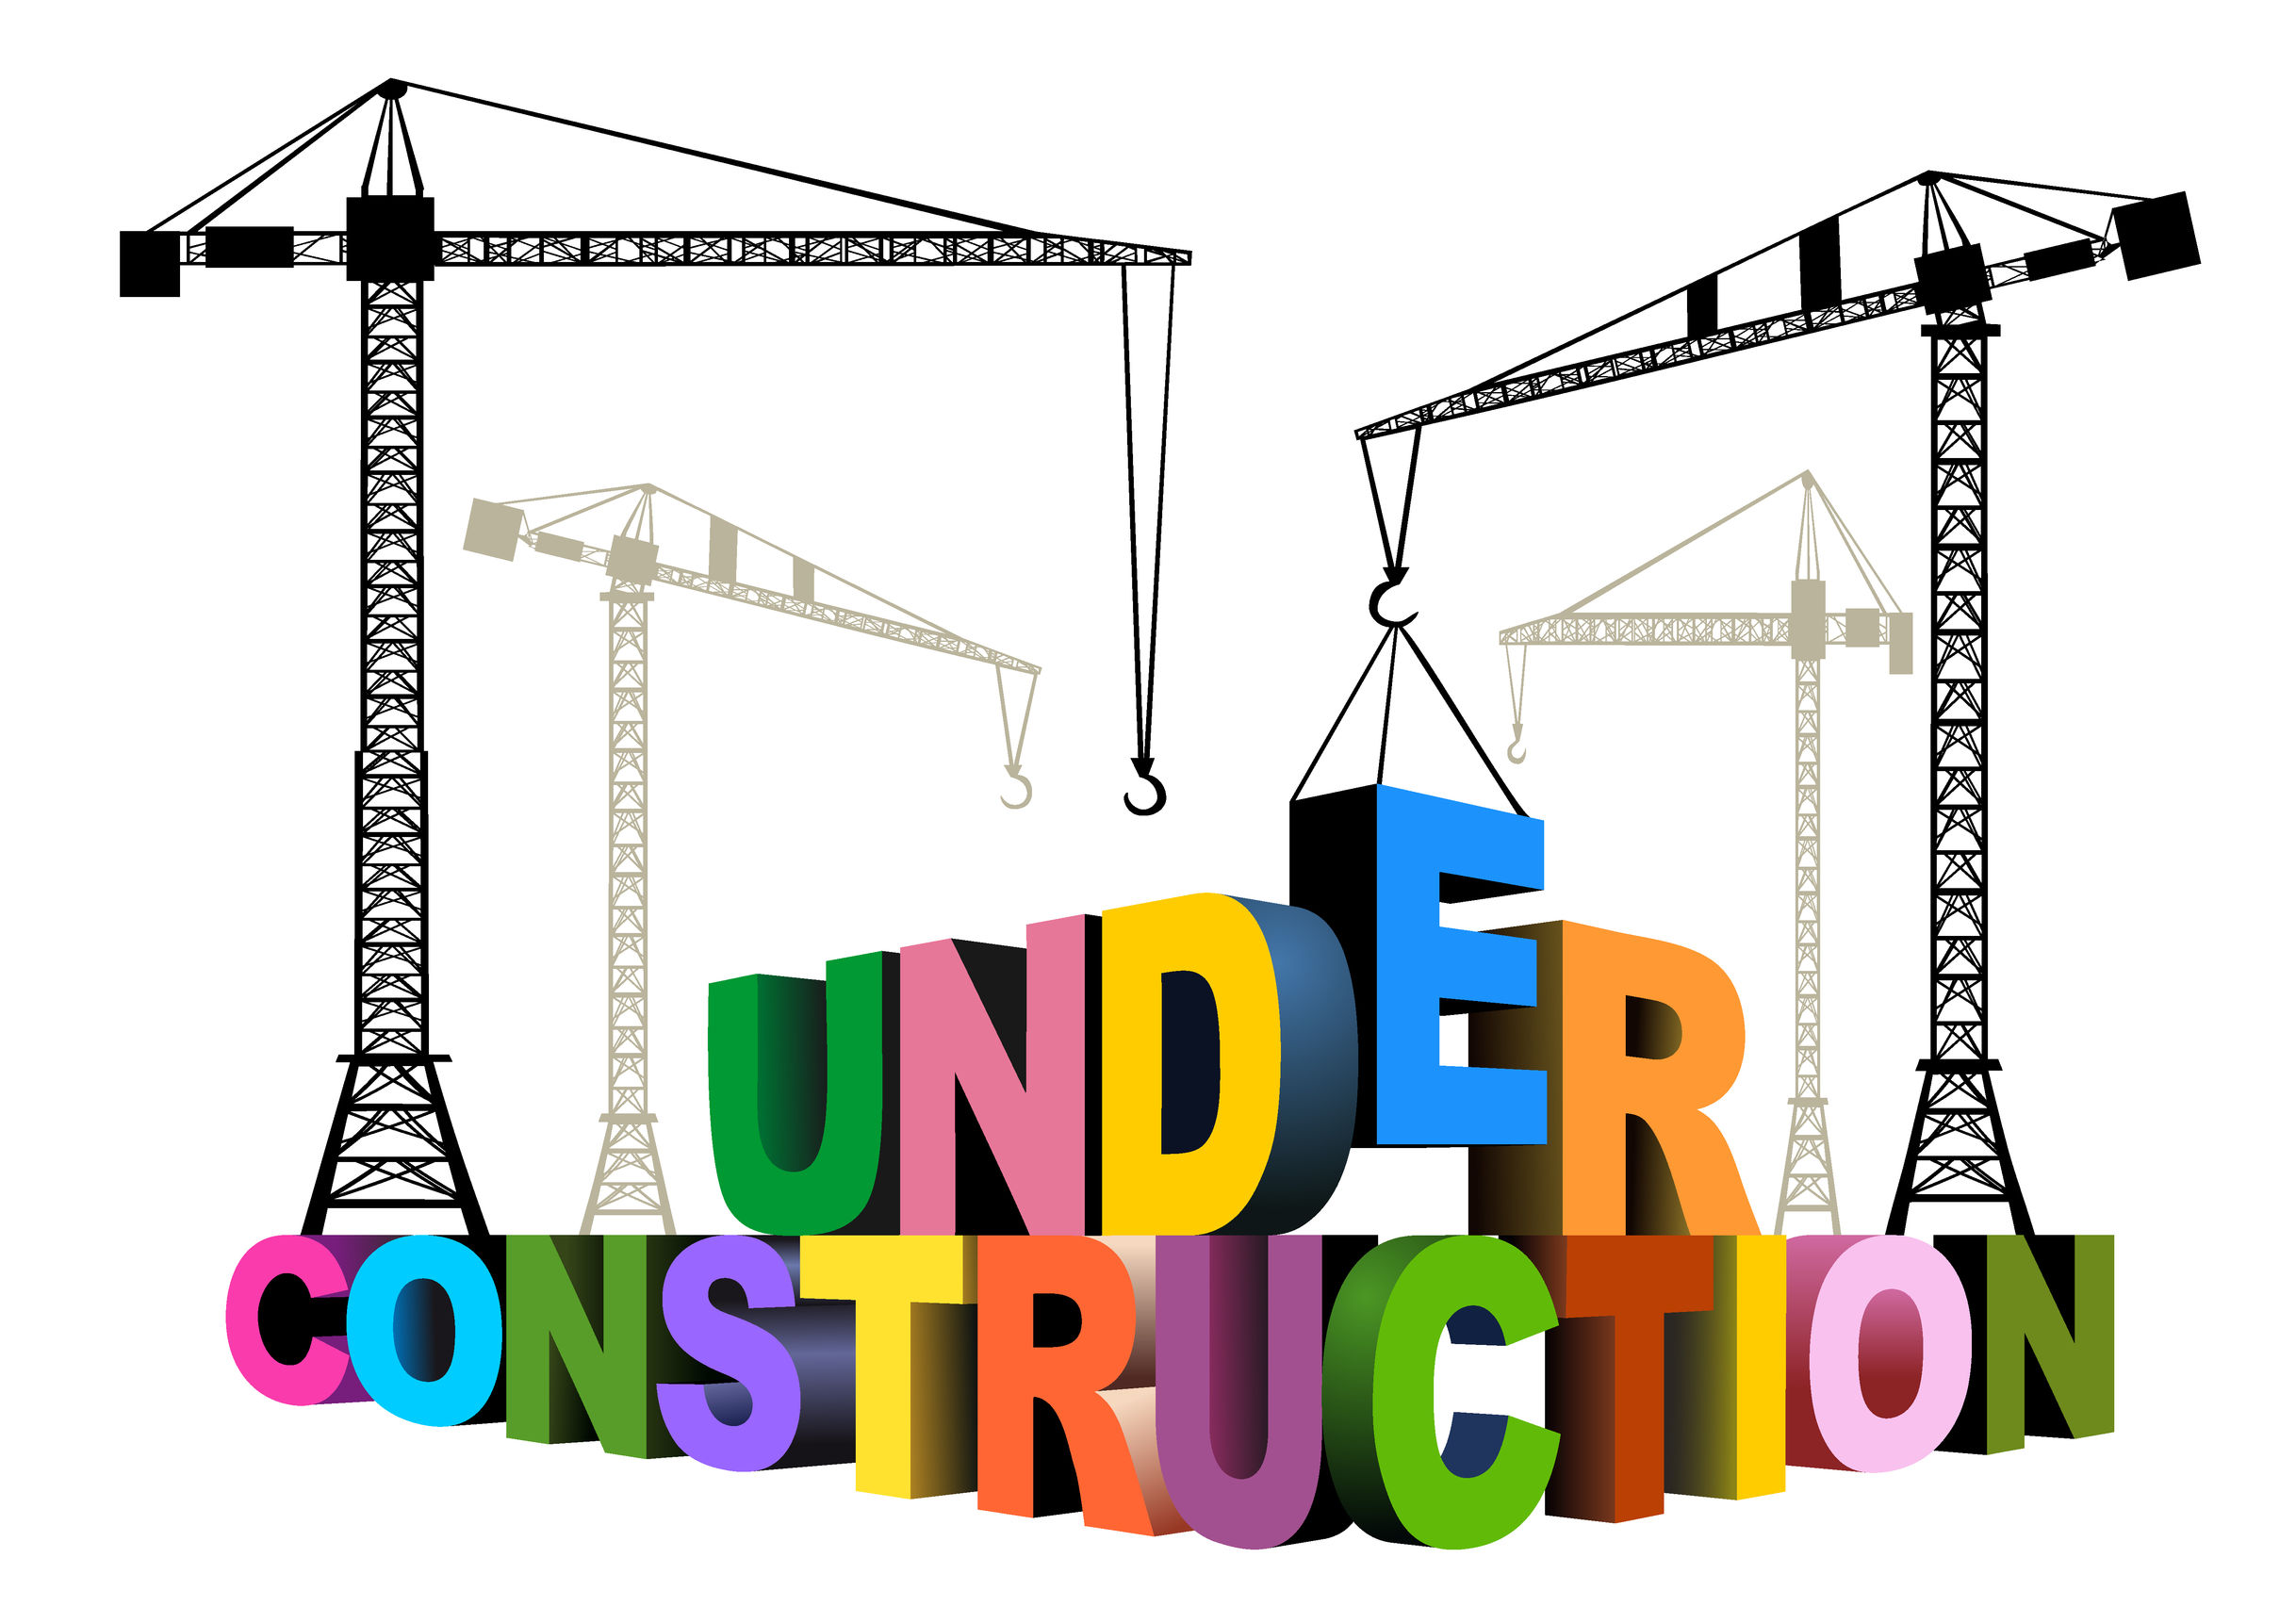 website-under-construction-image-1.jpg